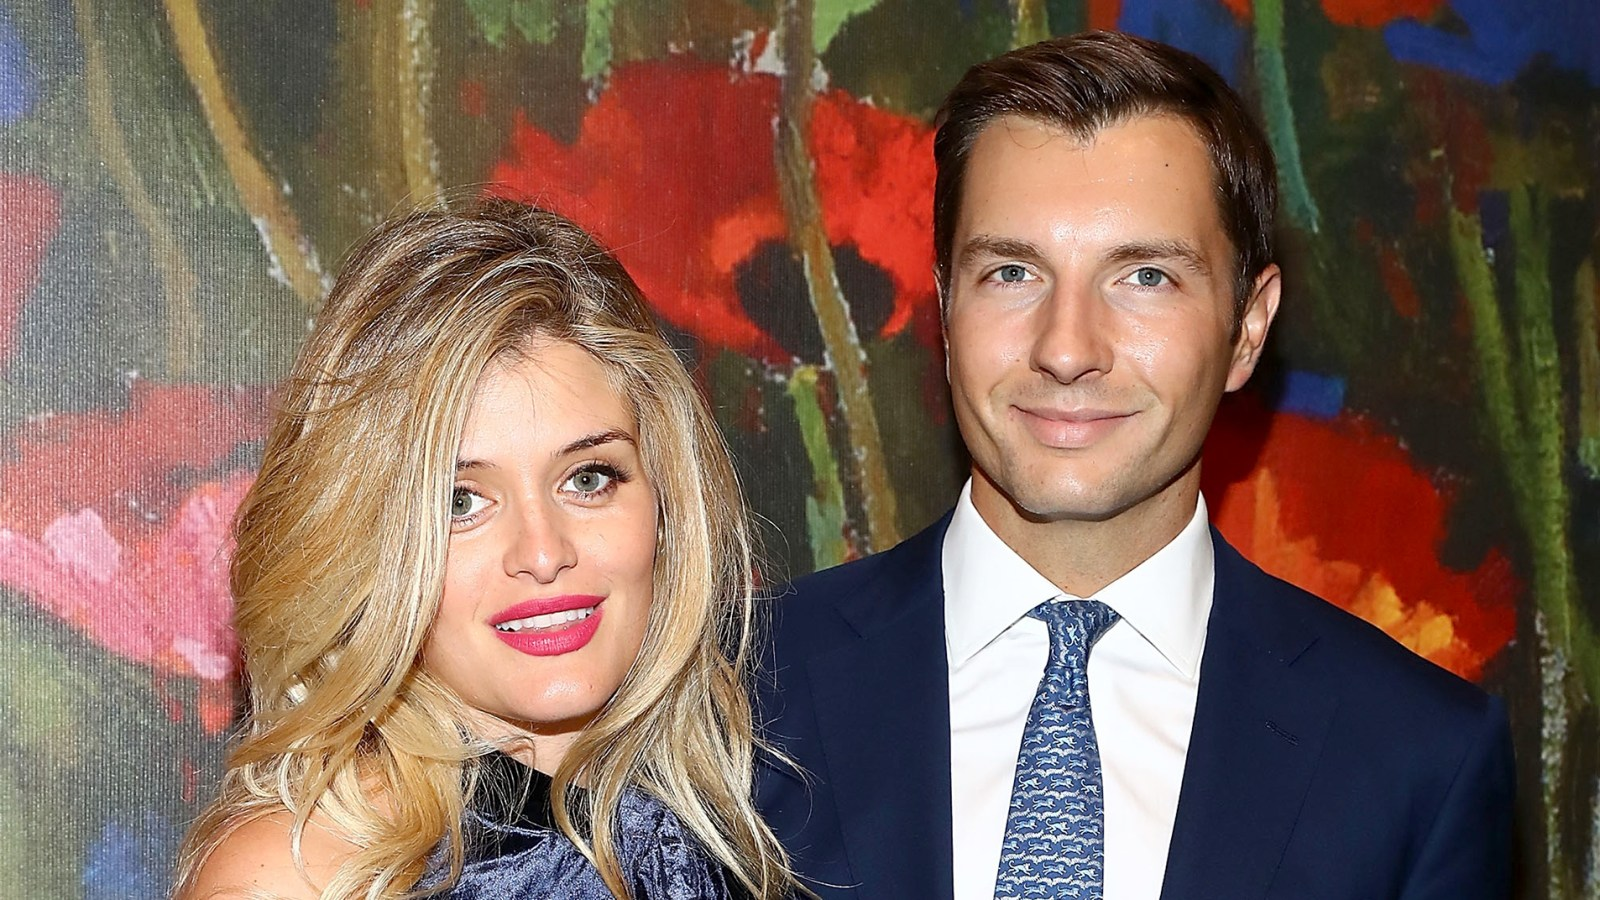 Daphne Oz Is Pregnant Expecting 4th Child With John Jovanovic